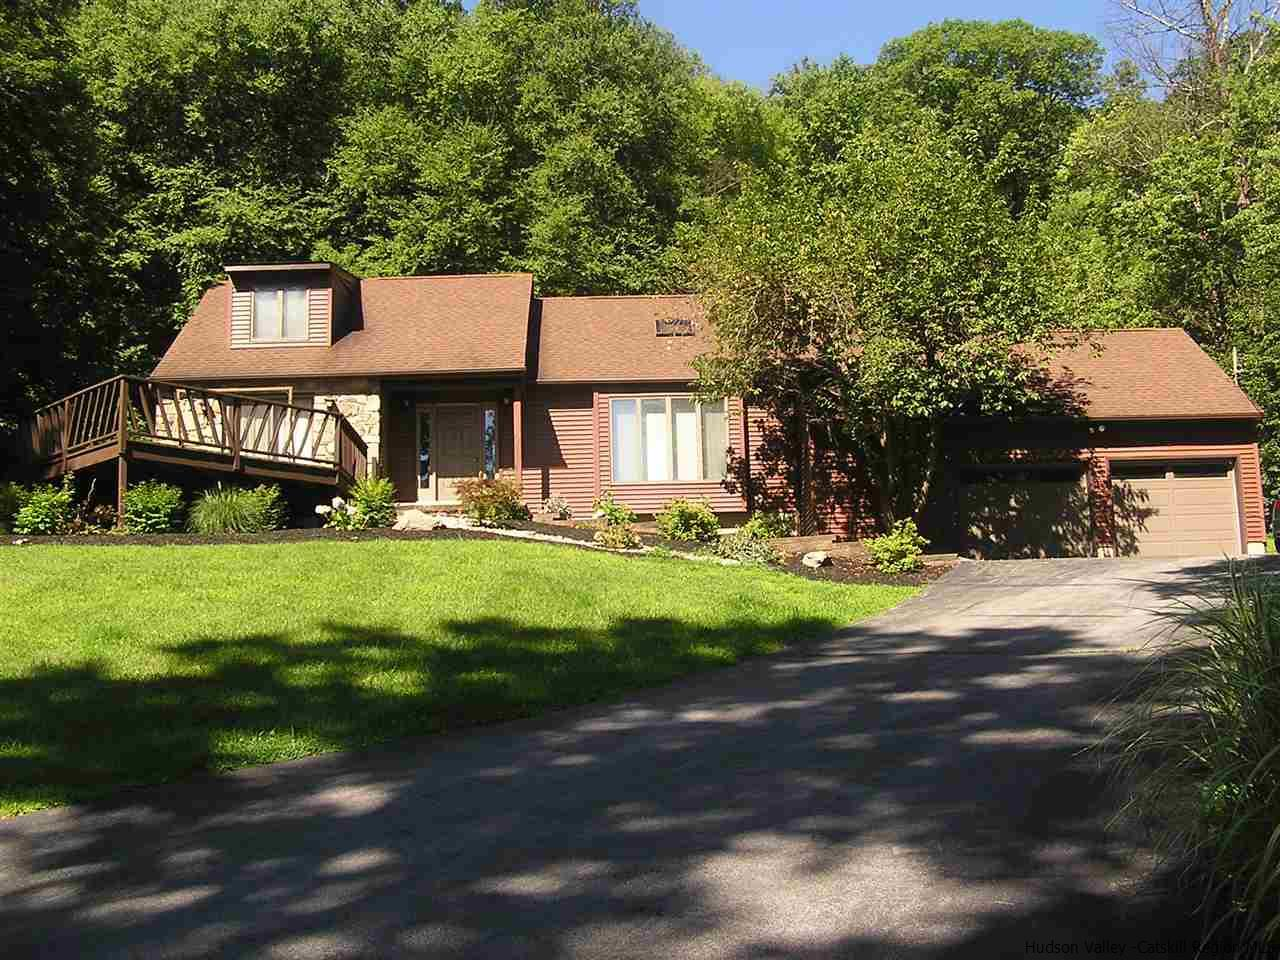 This is a must see won't last long at this price. Commuter friendly minutes to Mid Hudson Bridge, Train Station and NY State Thruway. This Home has an open floor plan Kitchen,Dinning Room and Living Room complete with stone Fireplace Cathedral ceiling and exposed wood beams. River Views from living area and also front deck. Home also has a great tree lined yard great for kids and family get togethers